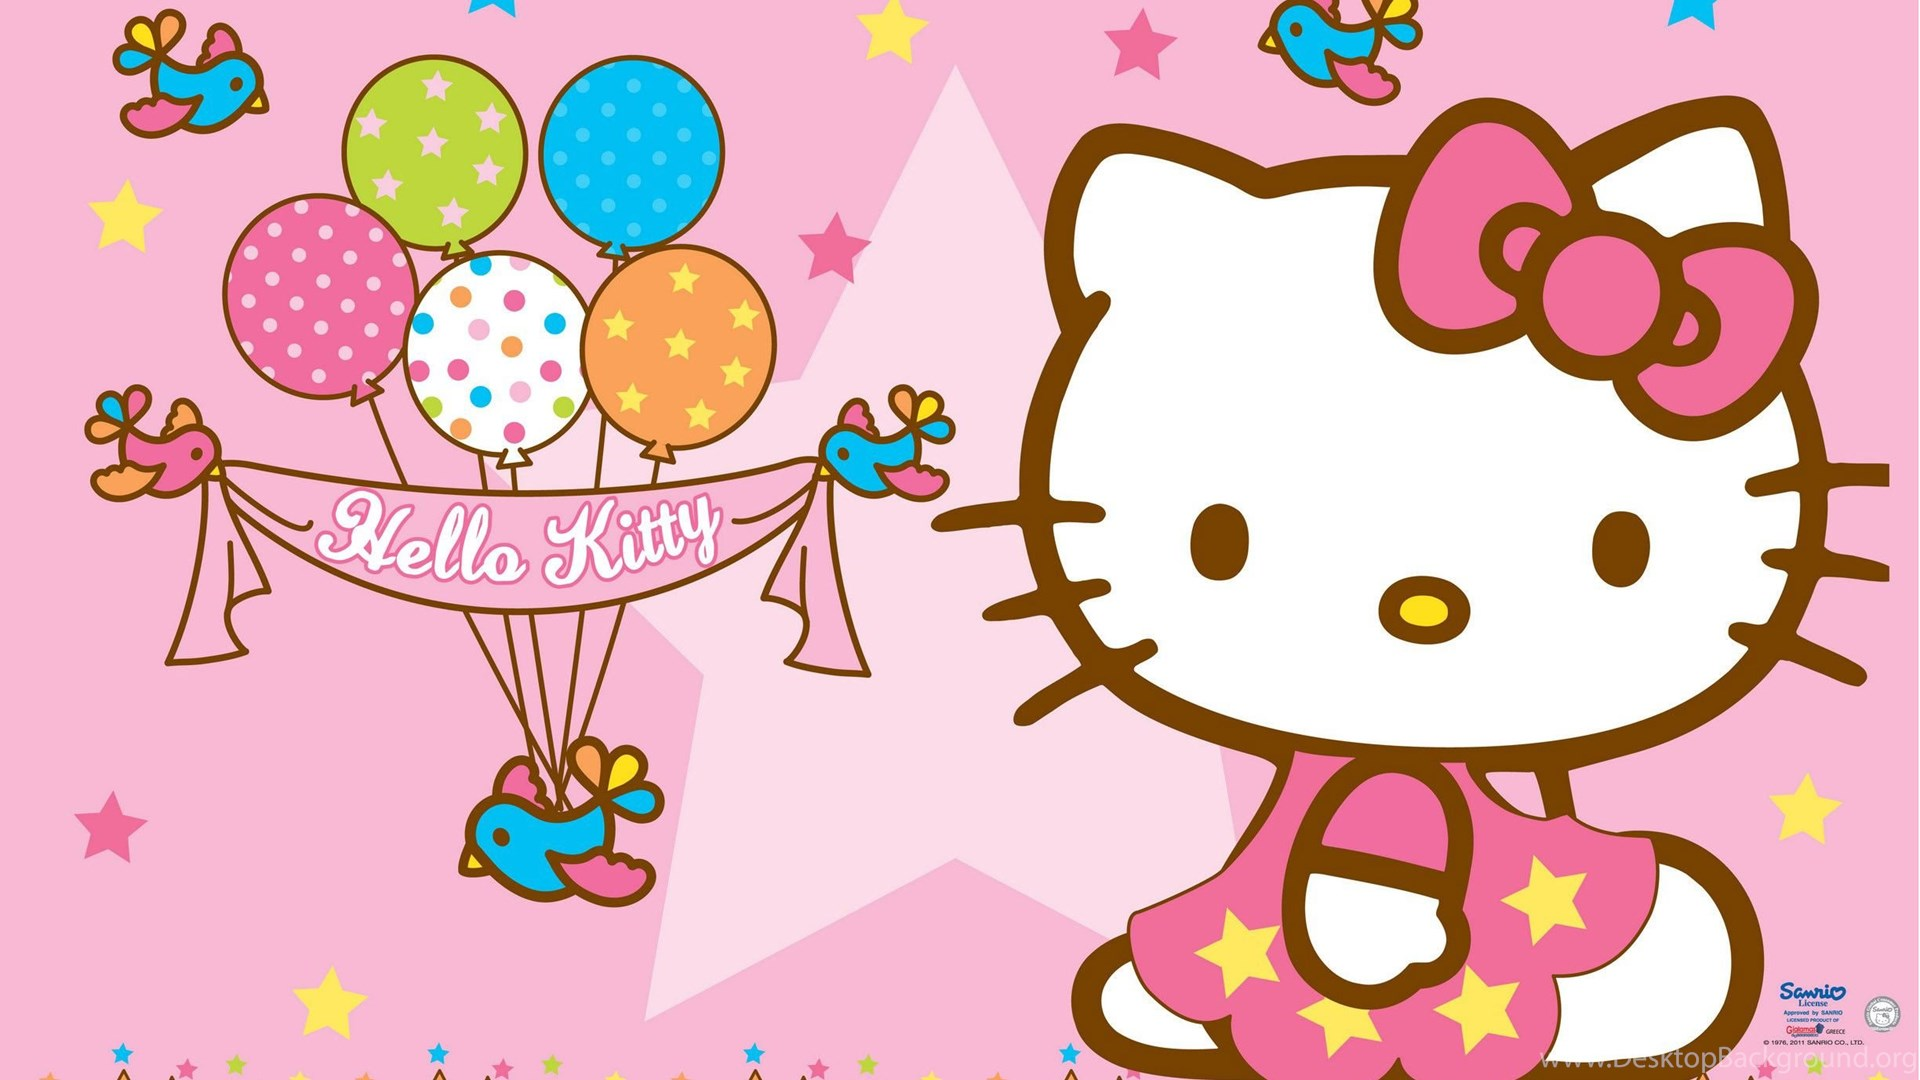 Simple Wallpaper Hello Kitty Iphone 3gs - 374596_hello-kitty-wallpapers-pink-backgrounds-and-balloons-for-birthday_2448x1600_h  Picture_154277.jpg